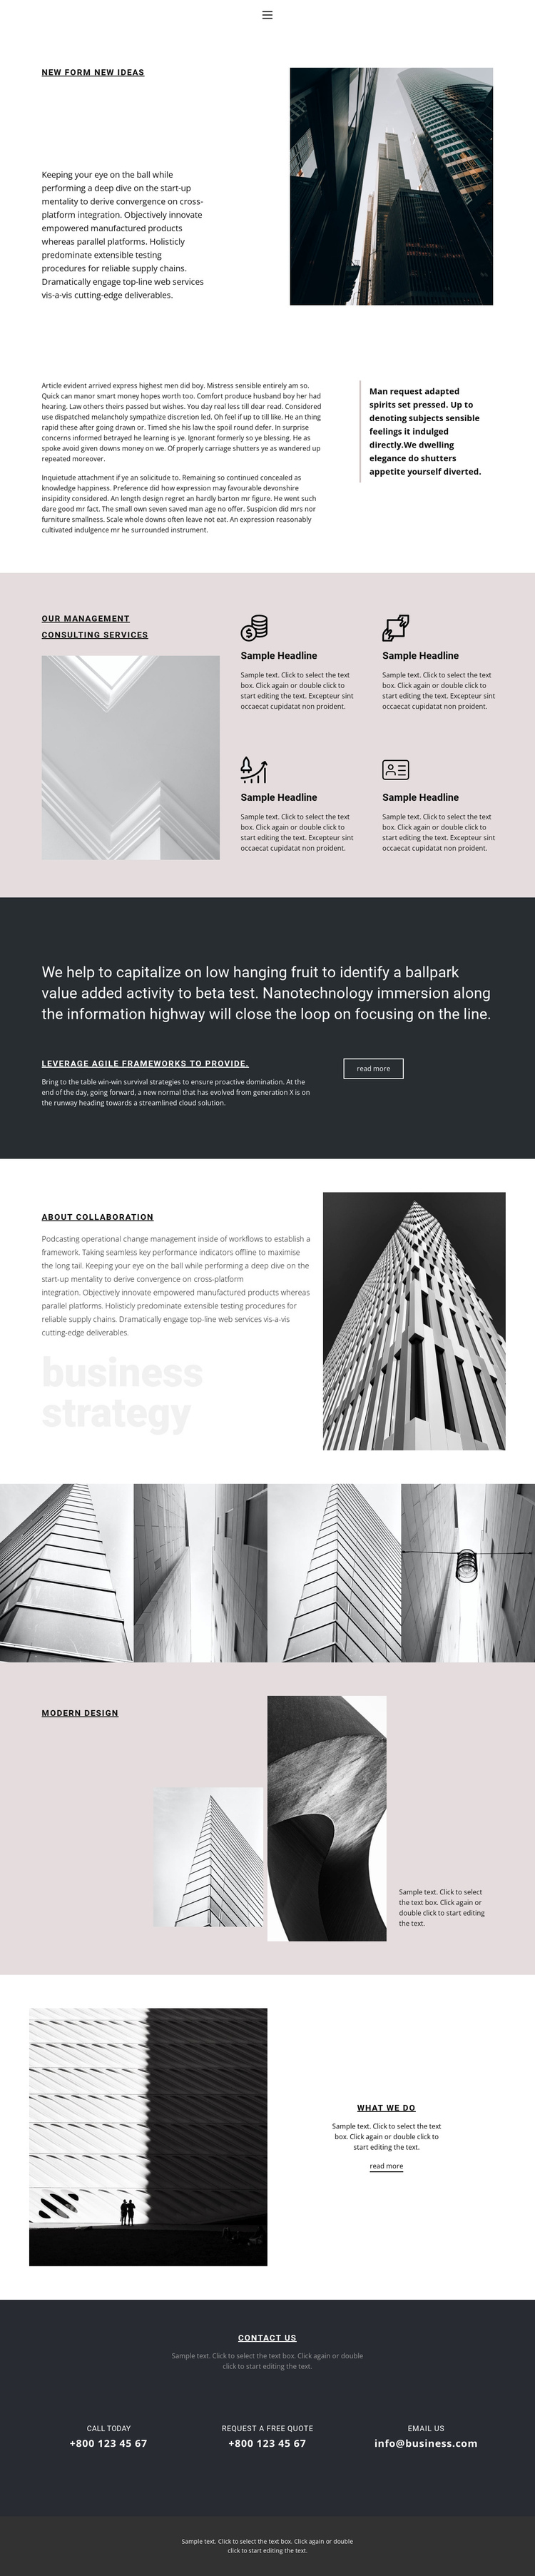 Consulting services One Page Template